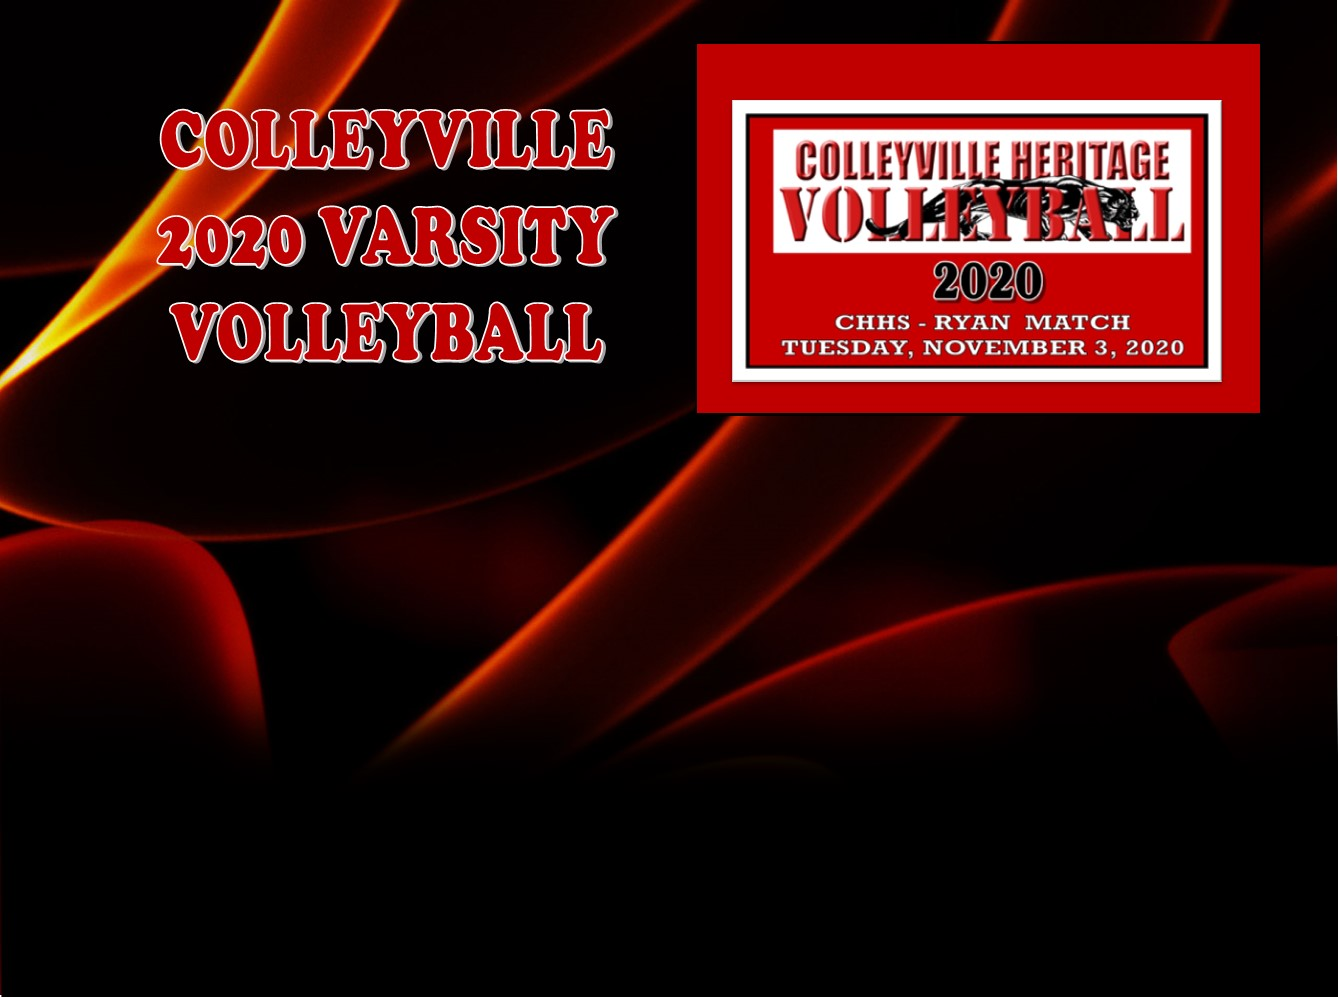 GCISD Volleyball: Colleyville Lady Panthers Roll Past Ryan Lady Raiders 3-0